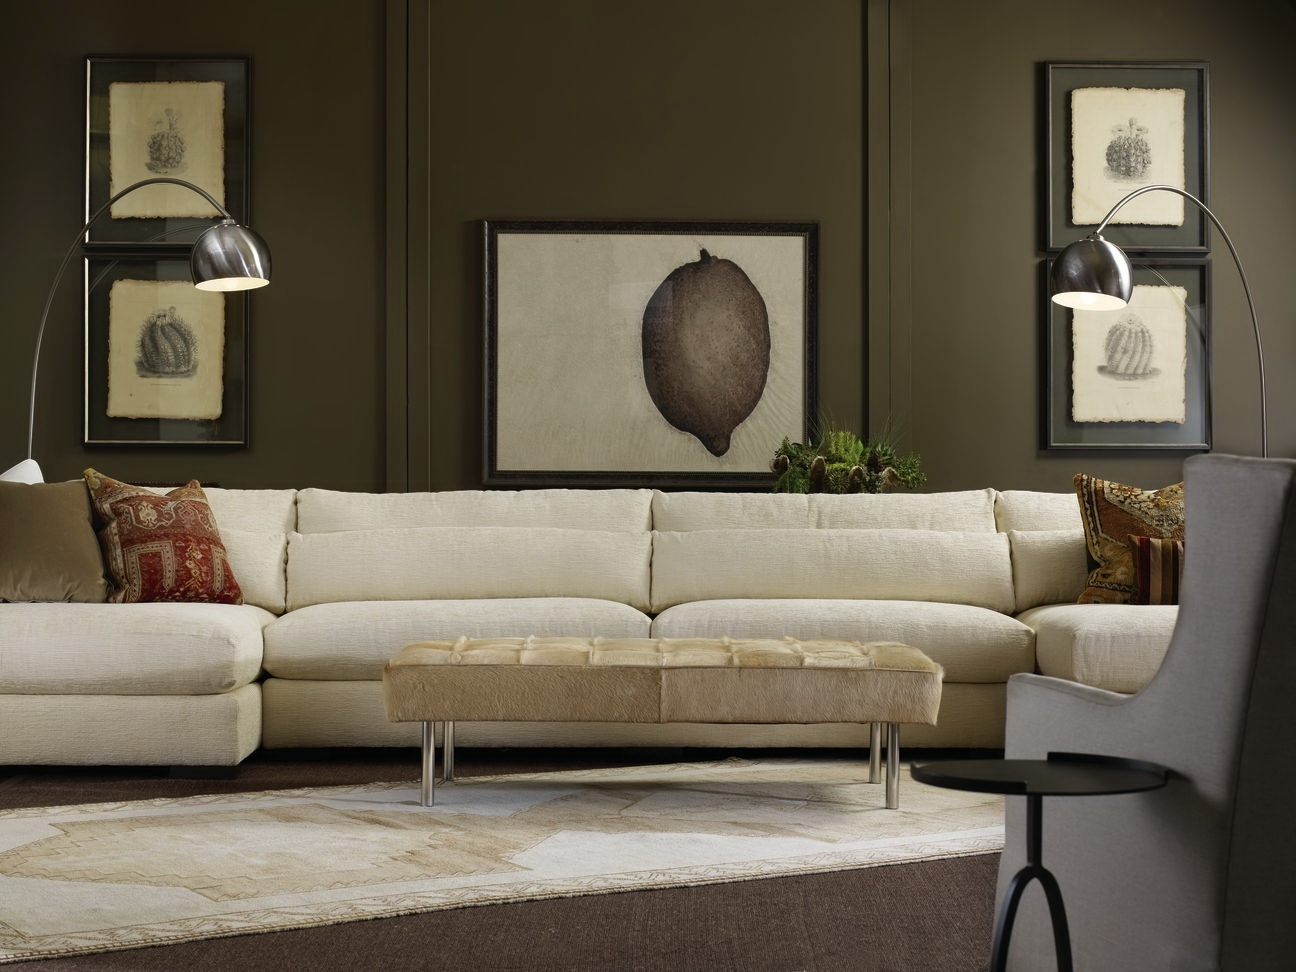 Well Liked Down Feather Sectional Sofas For Furniture: Nice Interior Furniture Designrobert Michaels (View 8 of 15)